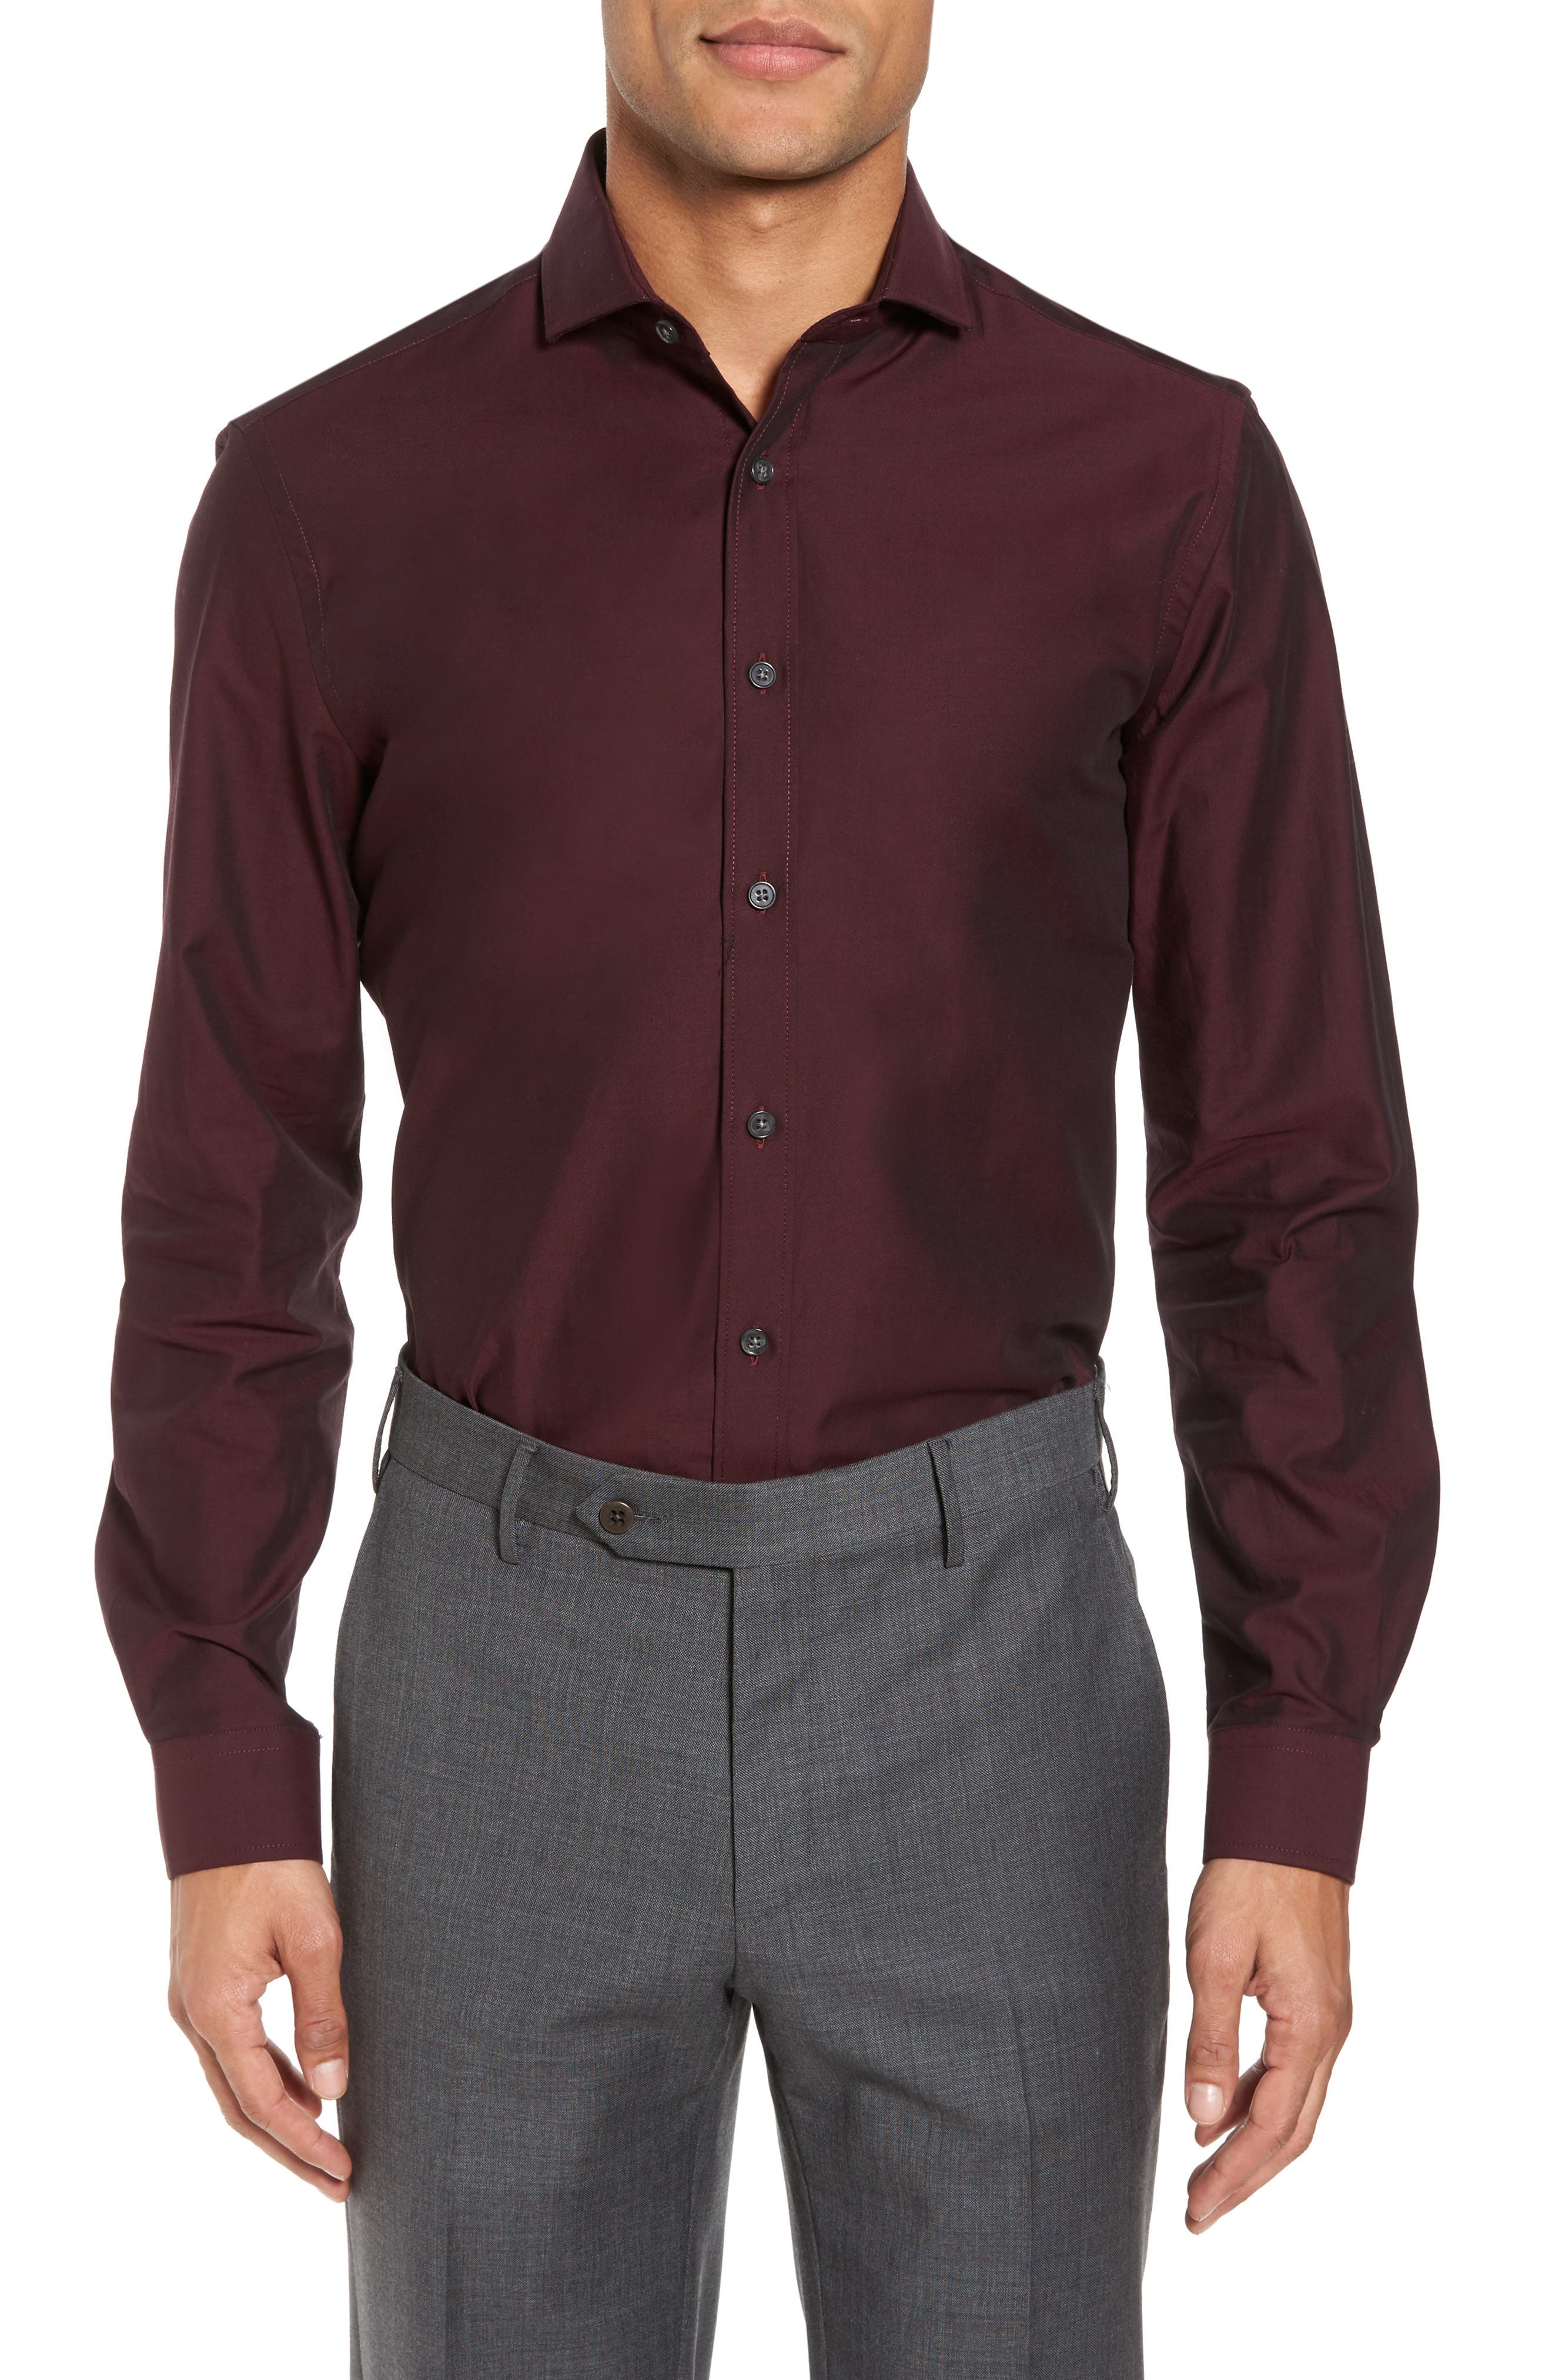 Alternate Image 1 Selected - Duchamp Trim Fit Solid Dress Shirt